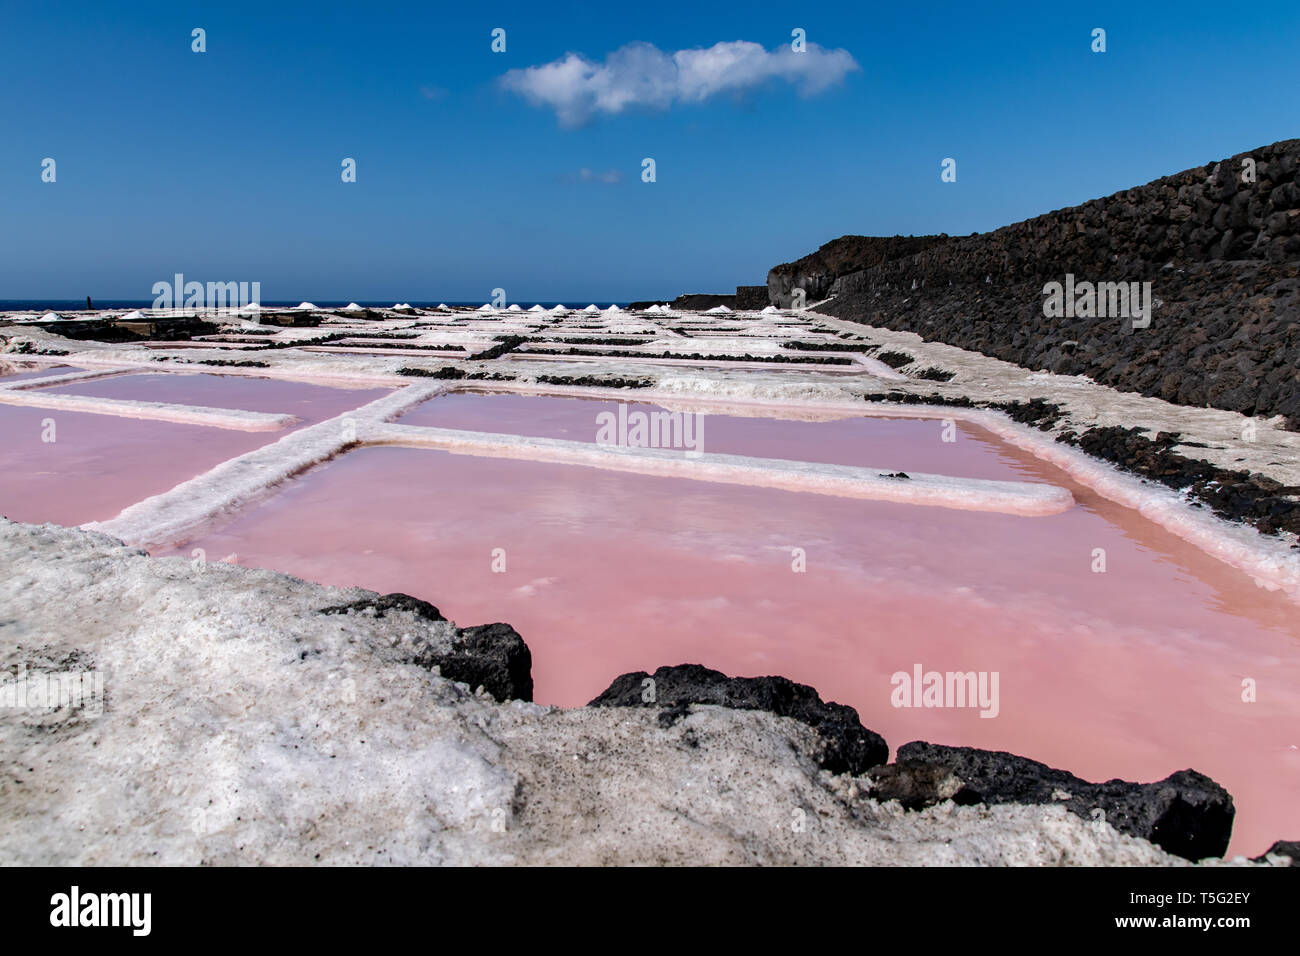 Colors during the salination evaporation process in the salt fields of Fuencaliente, La Palma Island, Canary Islands, Spain Stock Photo